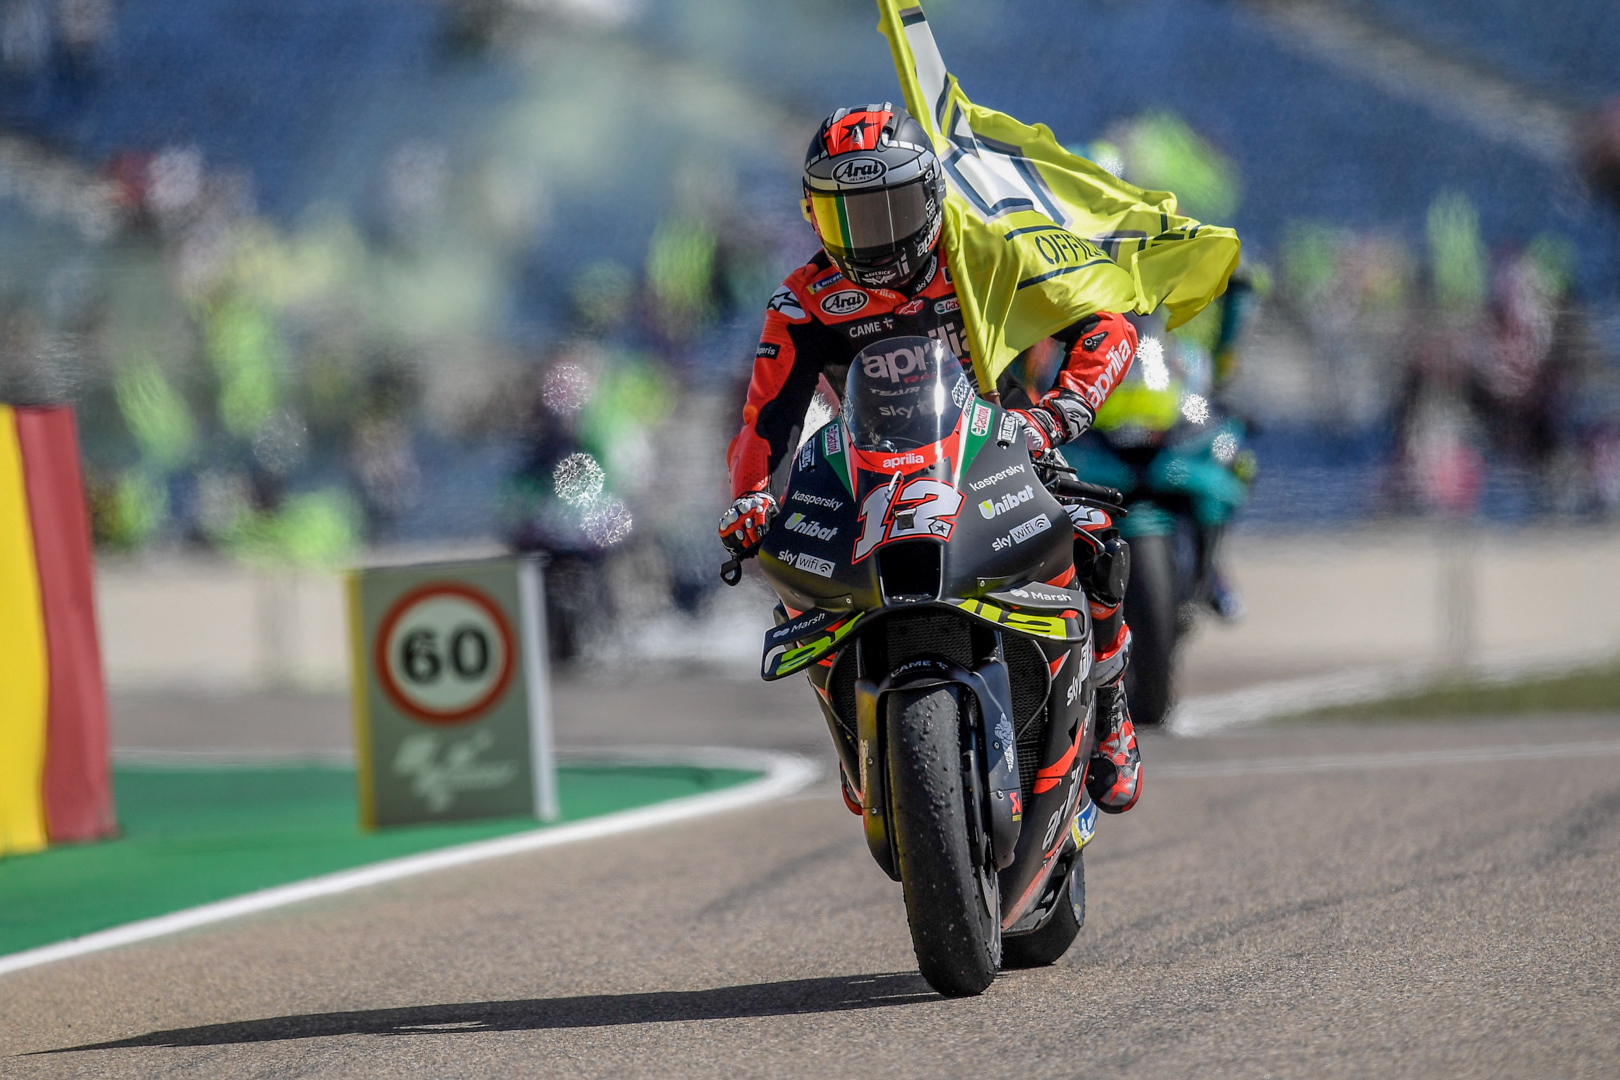 Another race at the front for Aleix and Aprilia, Maverick's feeling improves lap after lap